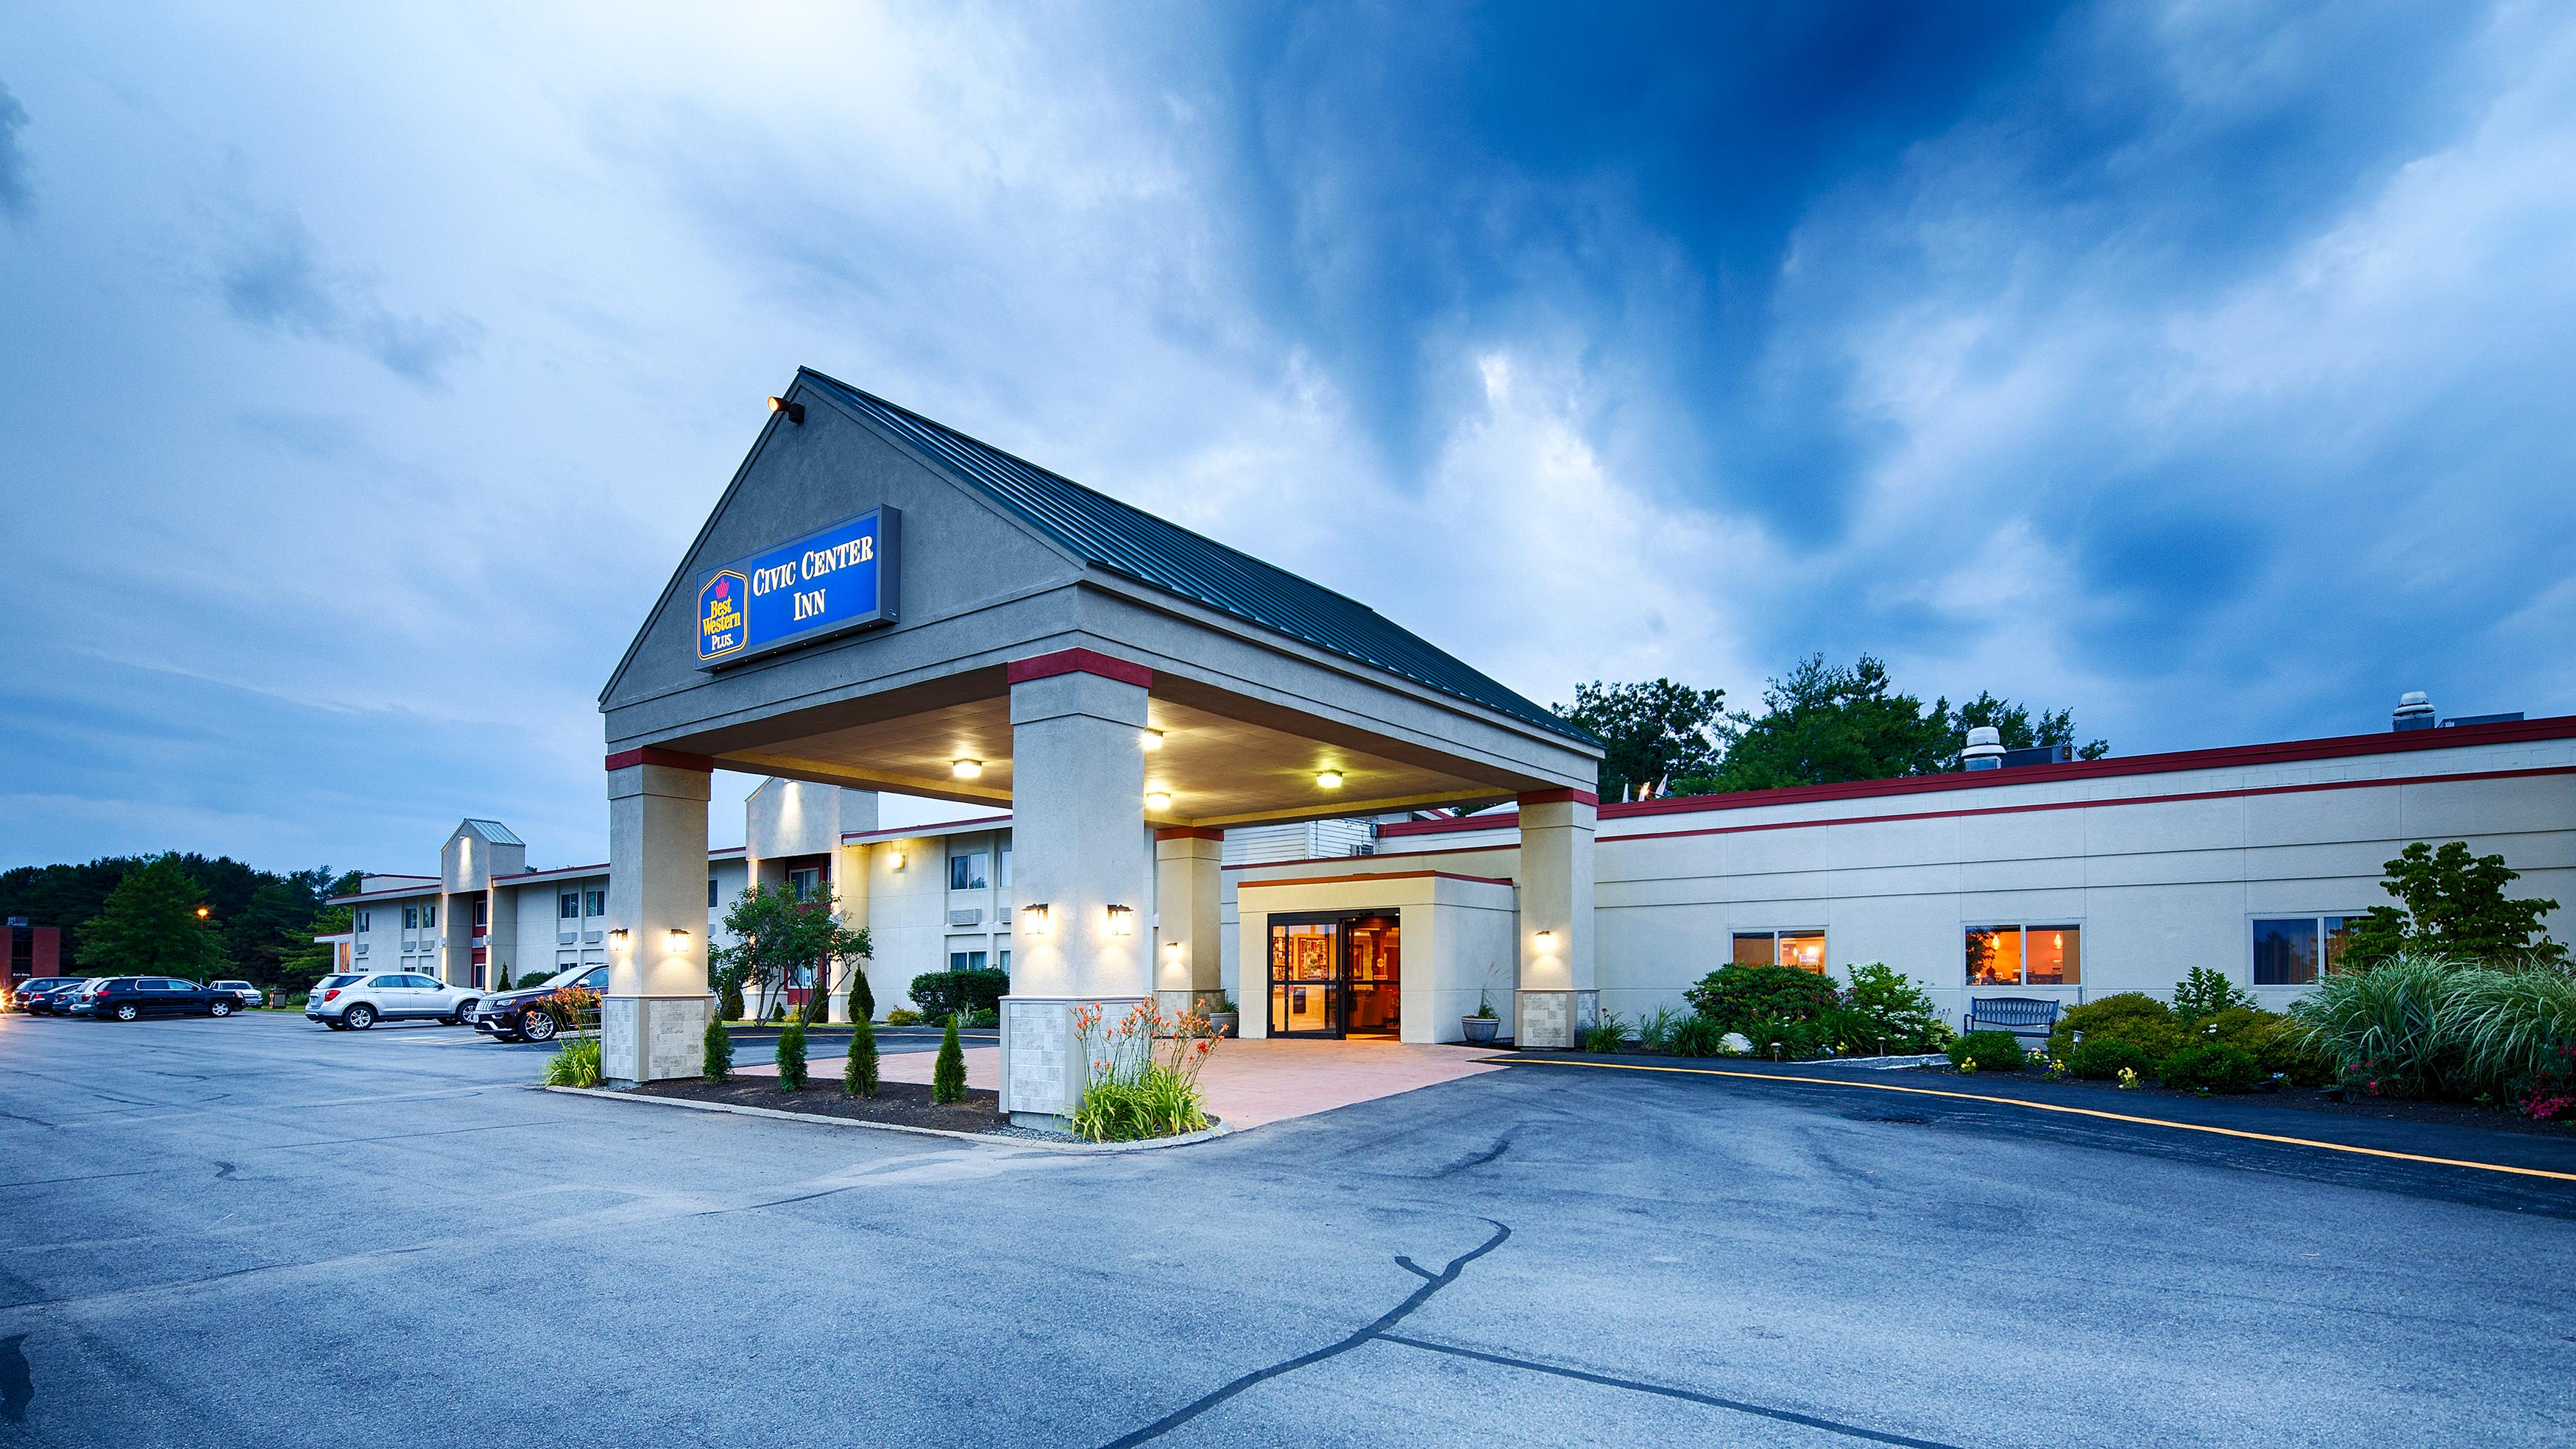 Coupons for hotels near me